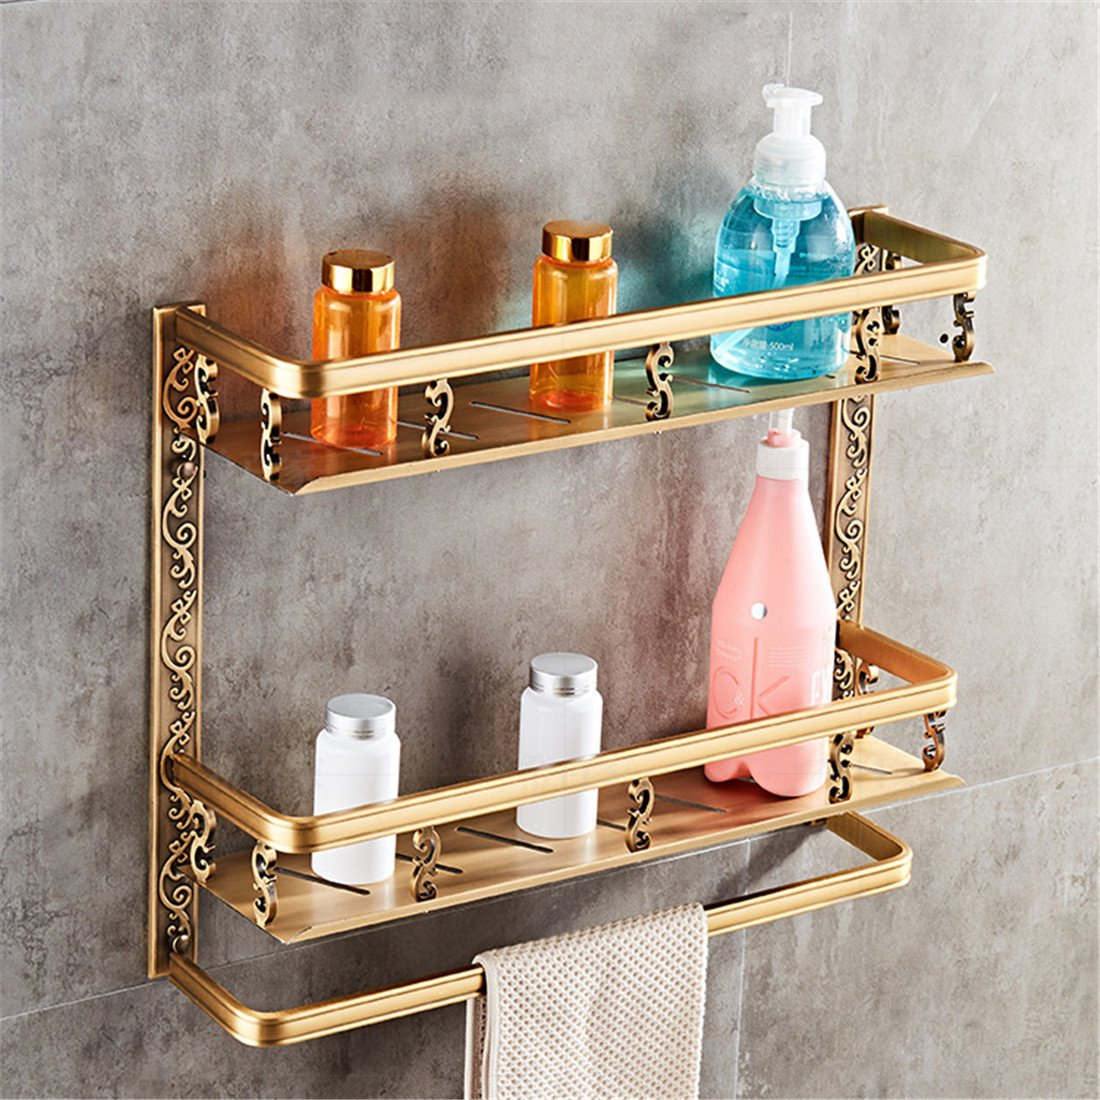 LAONA European style antique copper aluminum bathroom fittings, toilet paper frame, towel ring,Rack 2